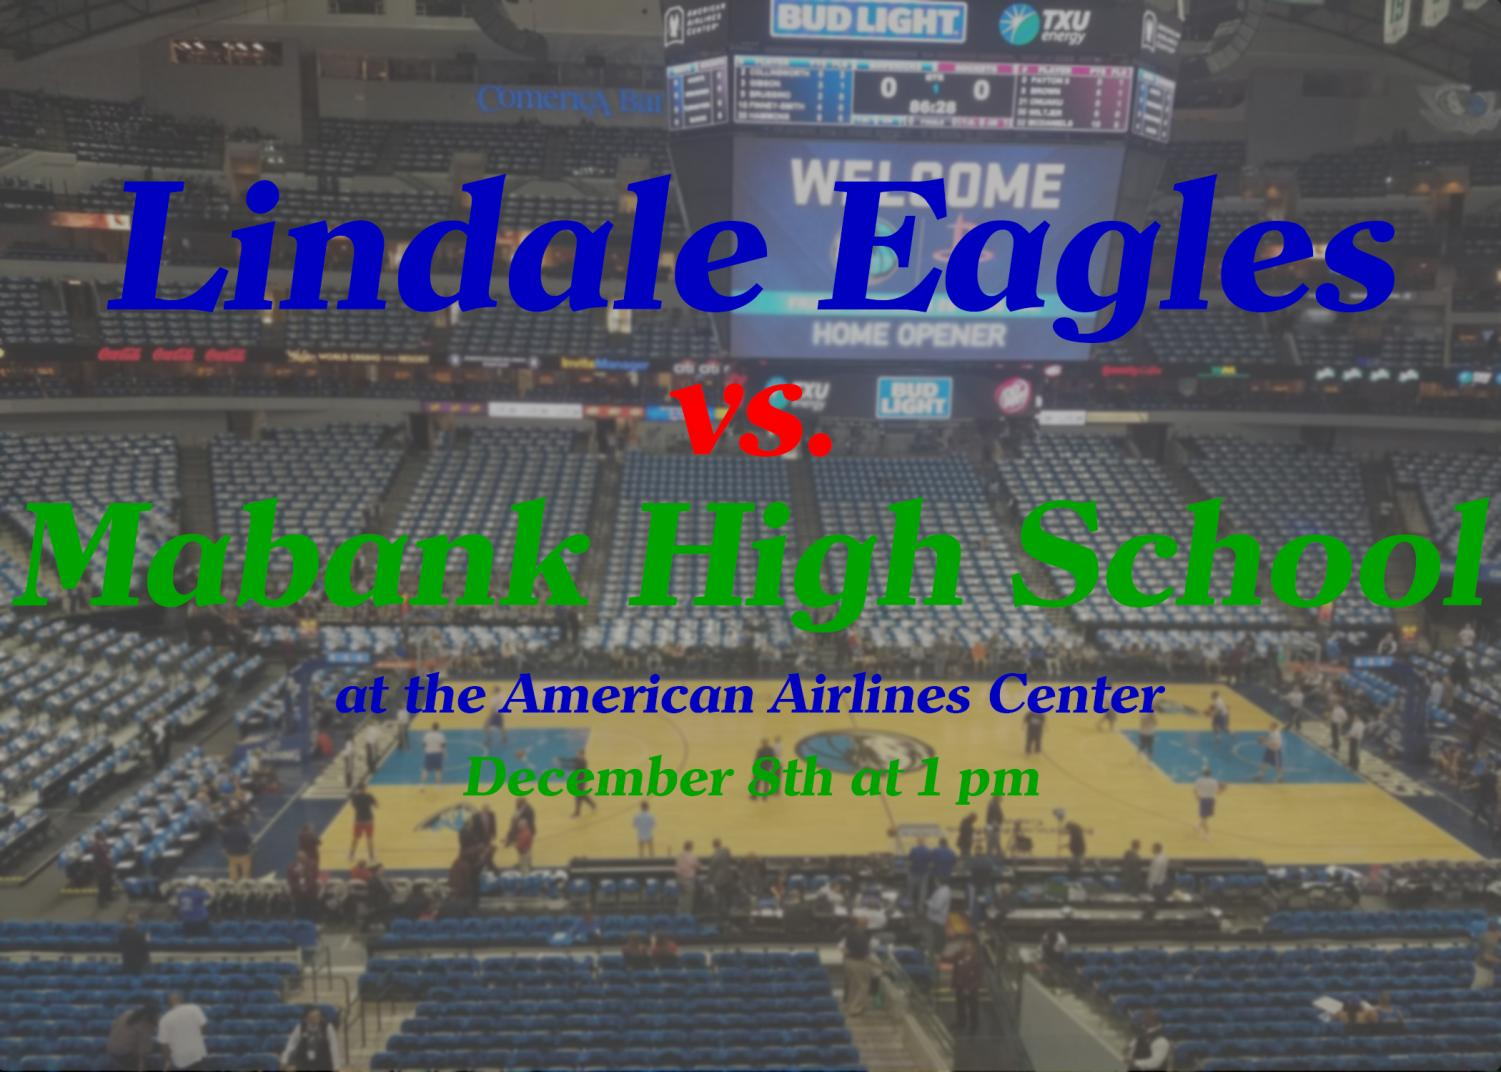 The Boys varsity basketball team will play Mabank High School on December 8th at 1 pm. The game will take place at the American Airlines Center in Dallas.